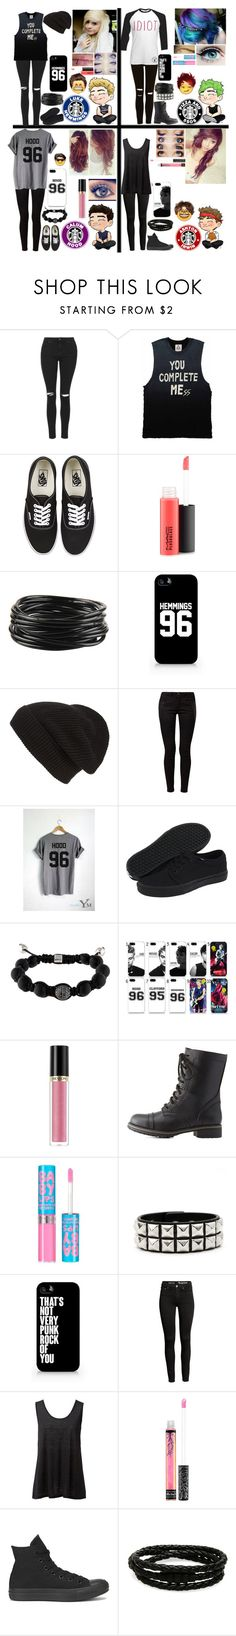 """""""Female versions of 5sos"""" by emmcg915 ❤ liked on Polyvore featuring Topshop, UNIF, Vans, MAC Cosmetics, Forever 21, Samsung, Phase 3, ONLY, Shamballa Jewels and Revlon"""